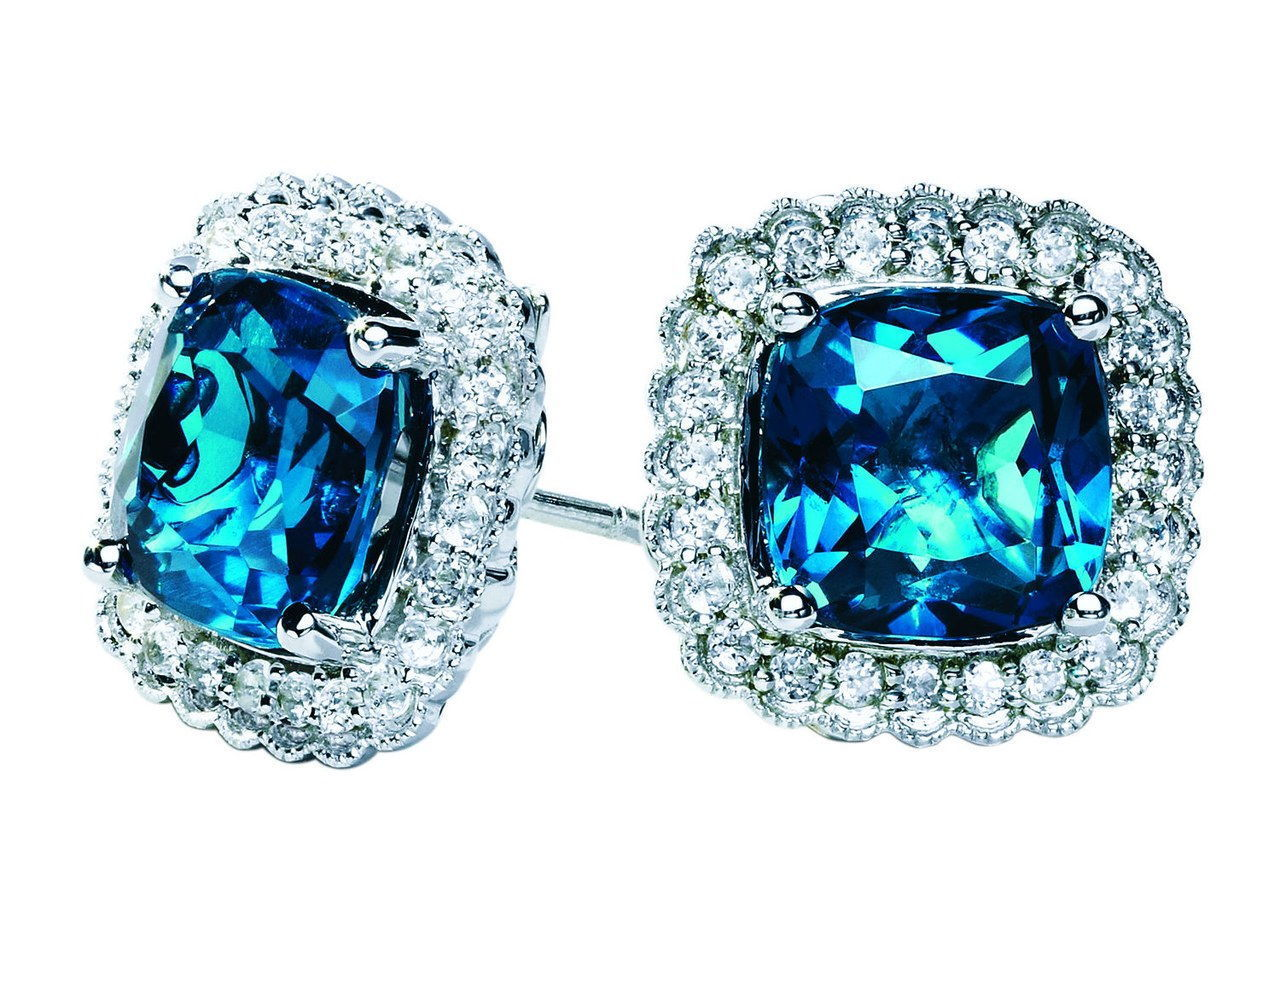 Sofija vergara kays sapphire earrings